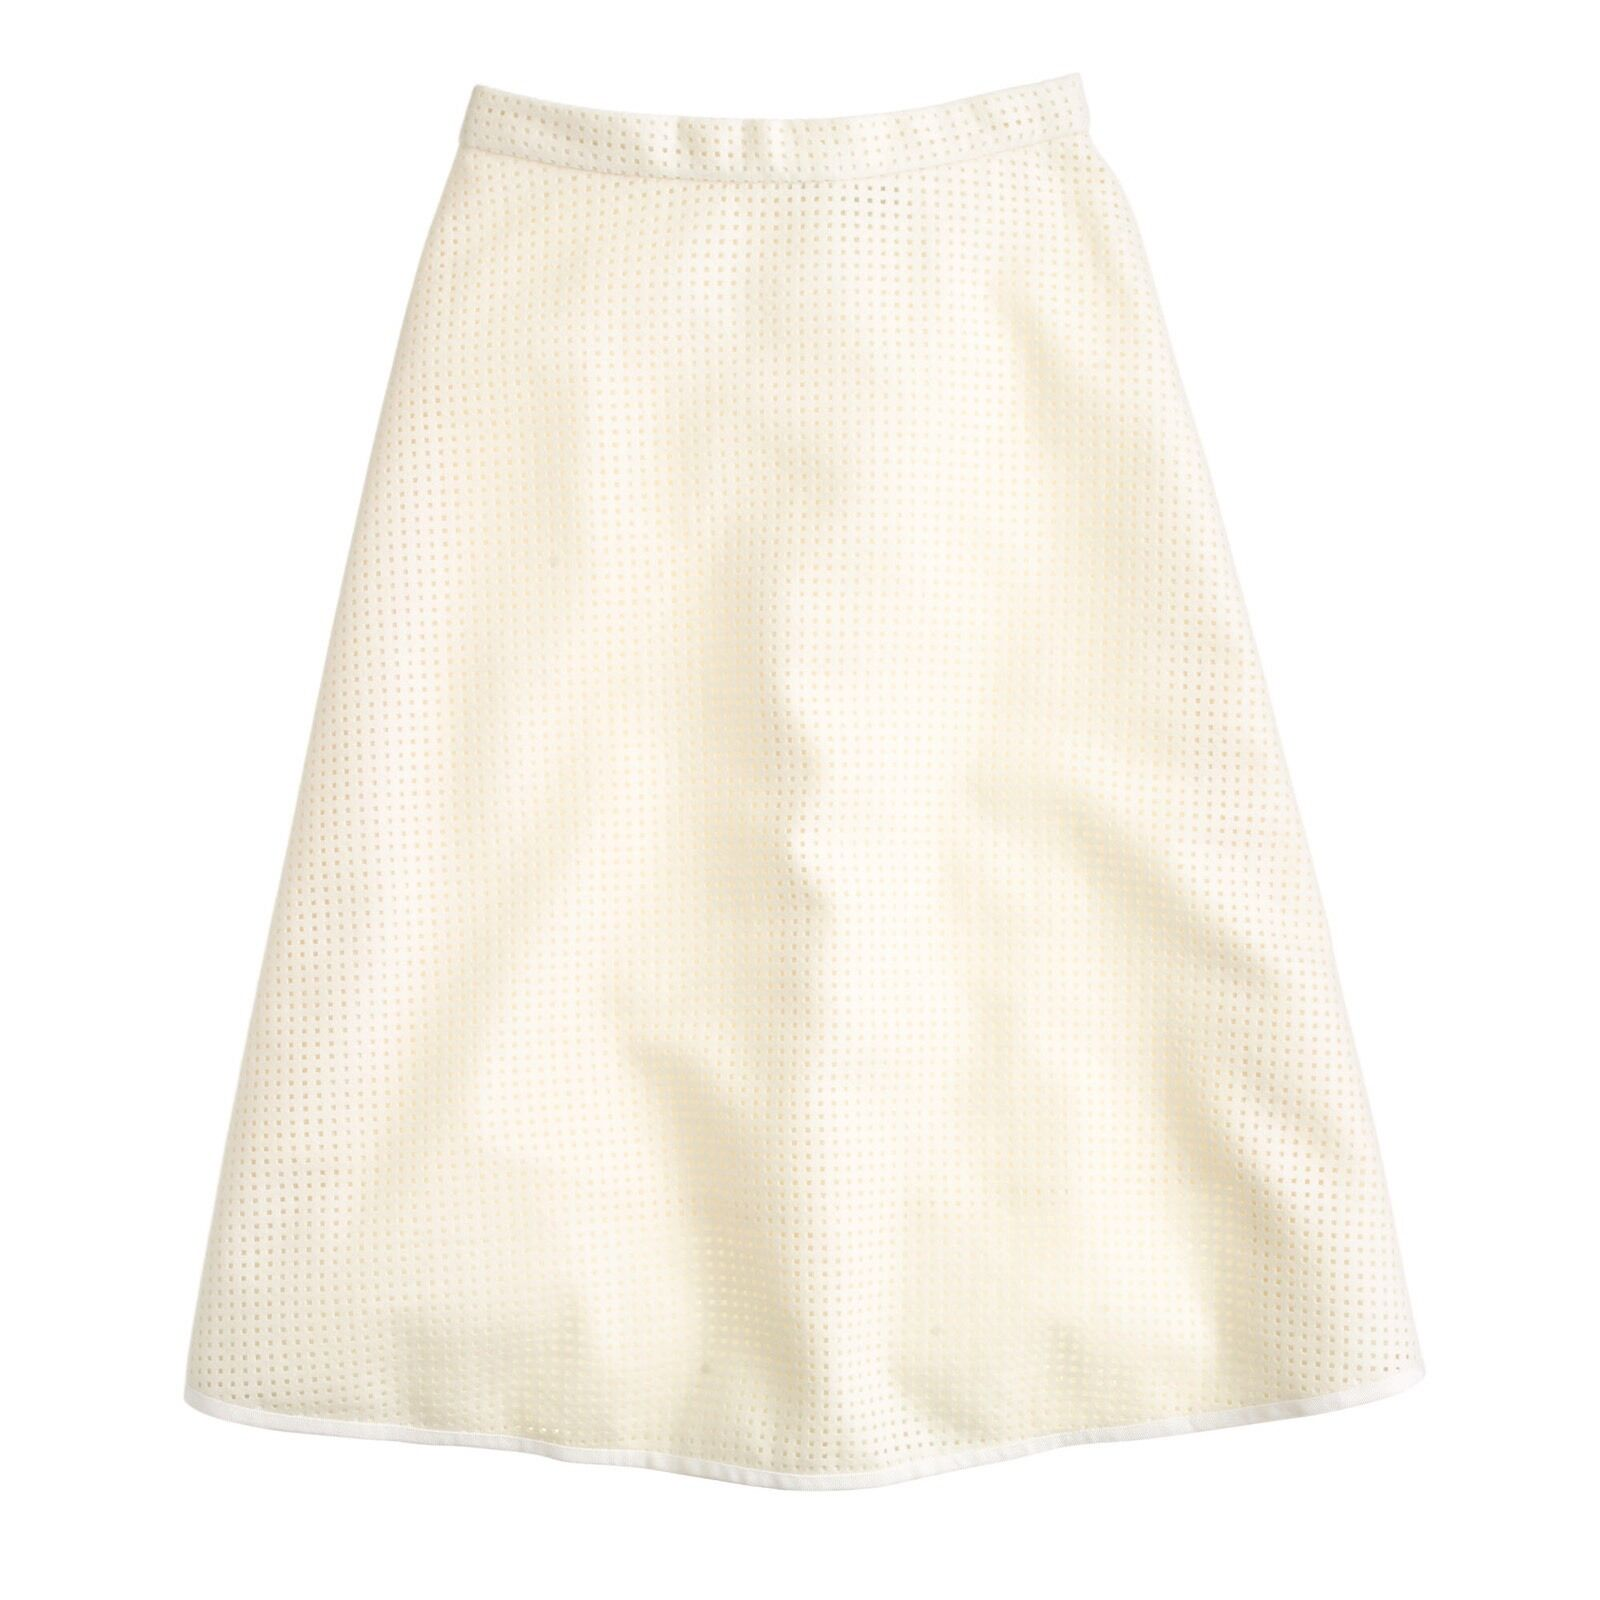 JCrew Collection perforated wool skirt size 2 B4457  325